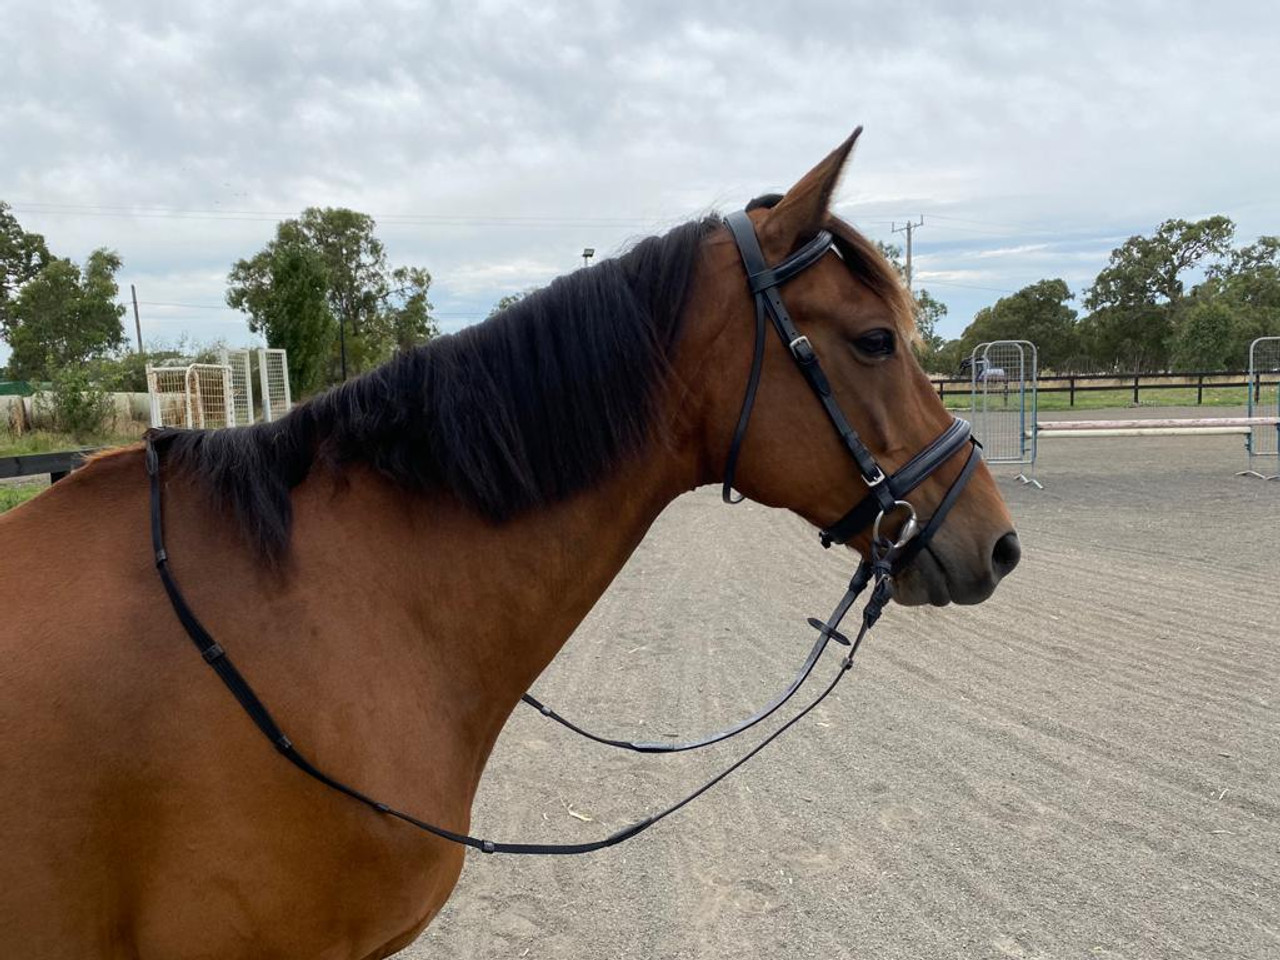 Bonzer Bridle Raised Bridle Padded crown Baracandy With Reins